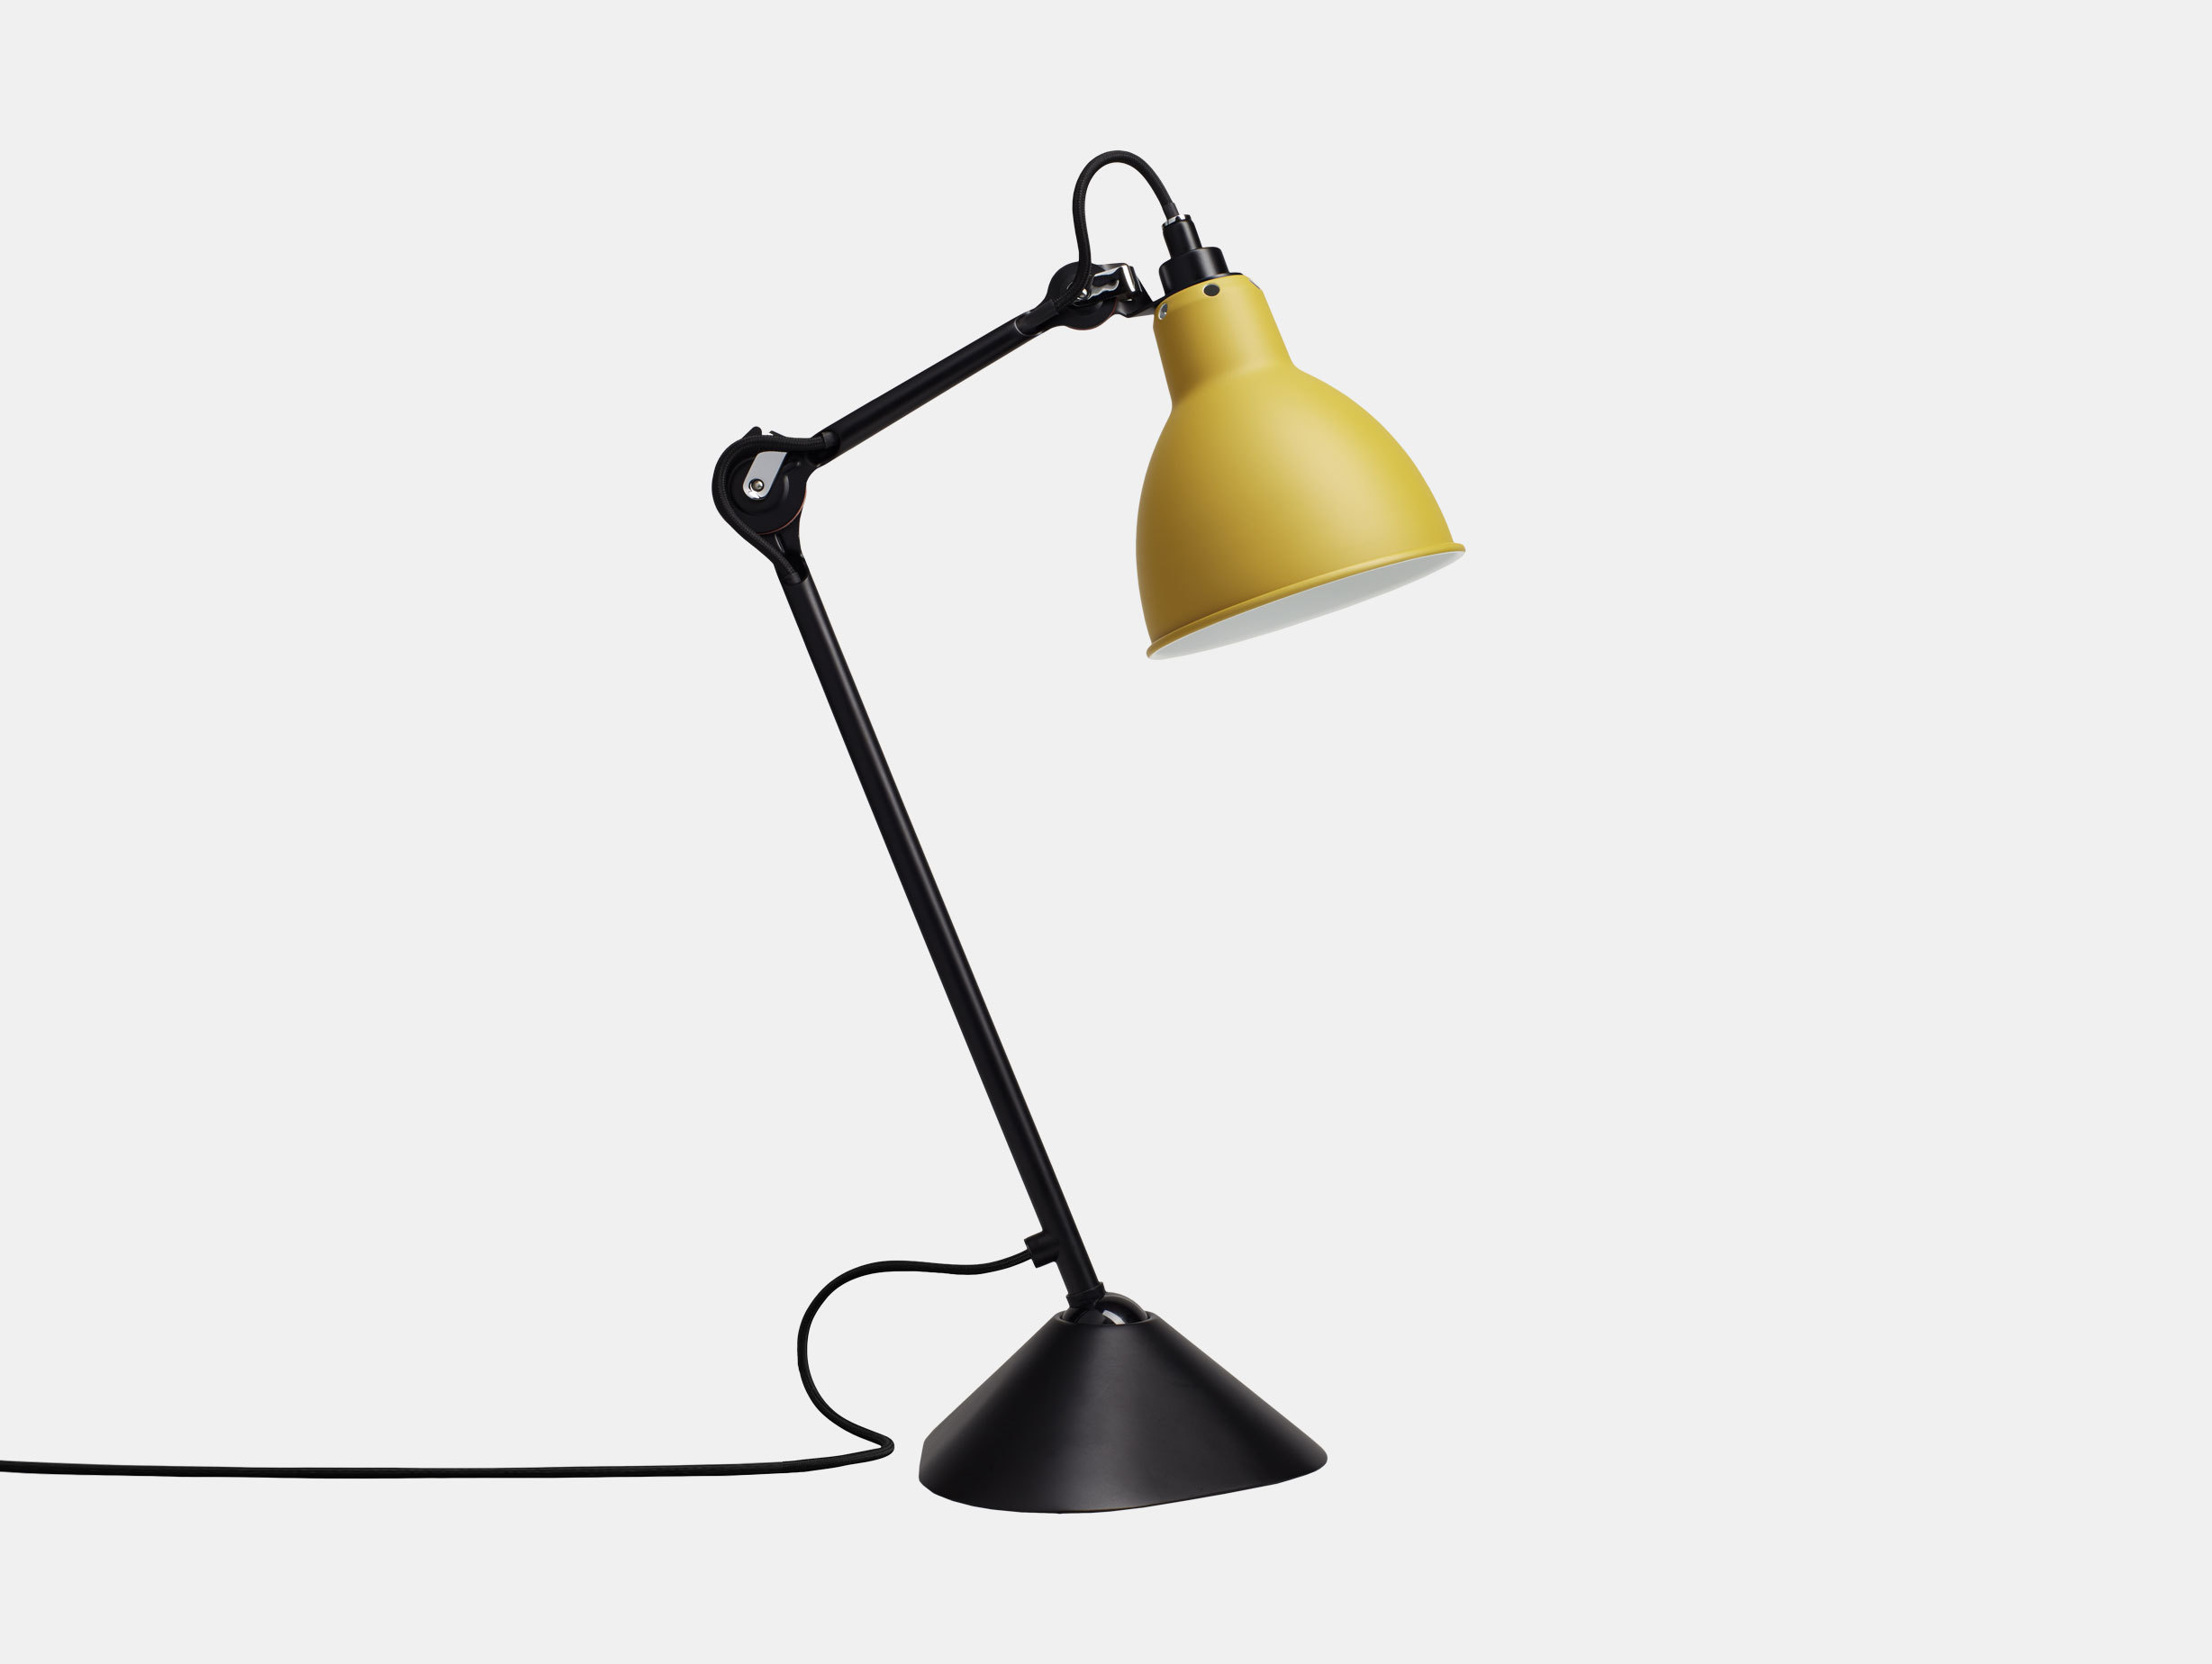 Dcw Lampe Gras No 205 Table Lamp Yellow Bernard Albin Gras